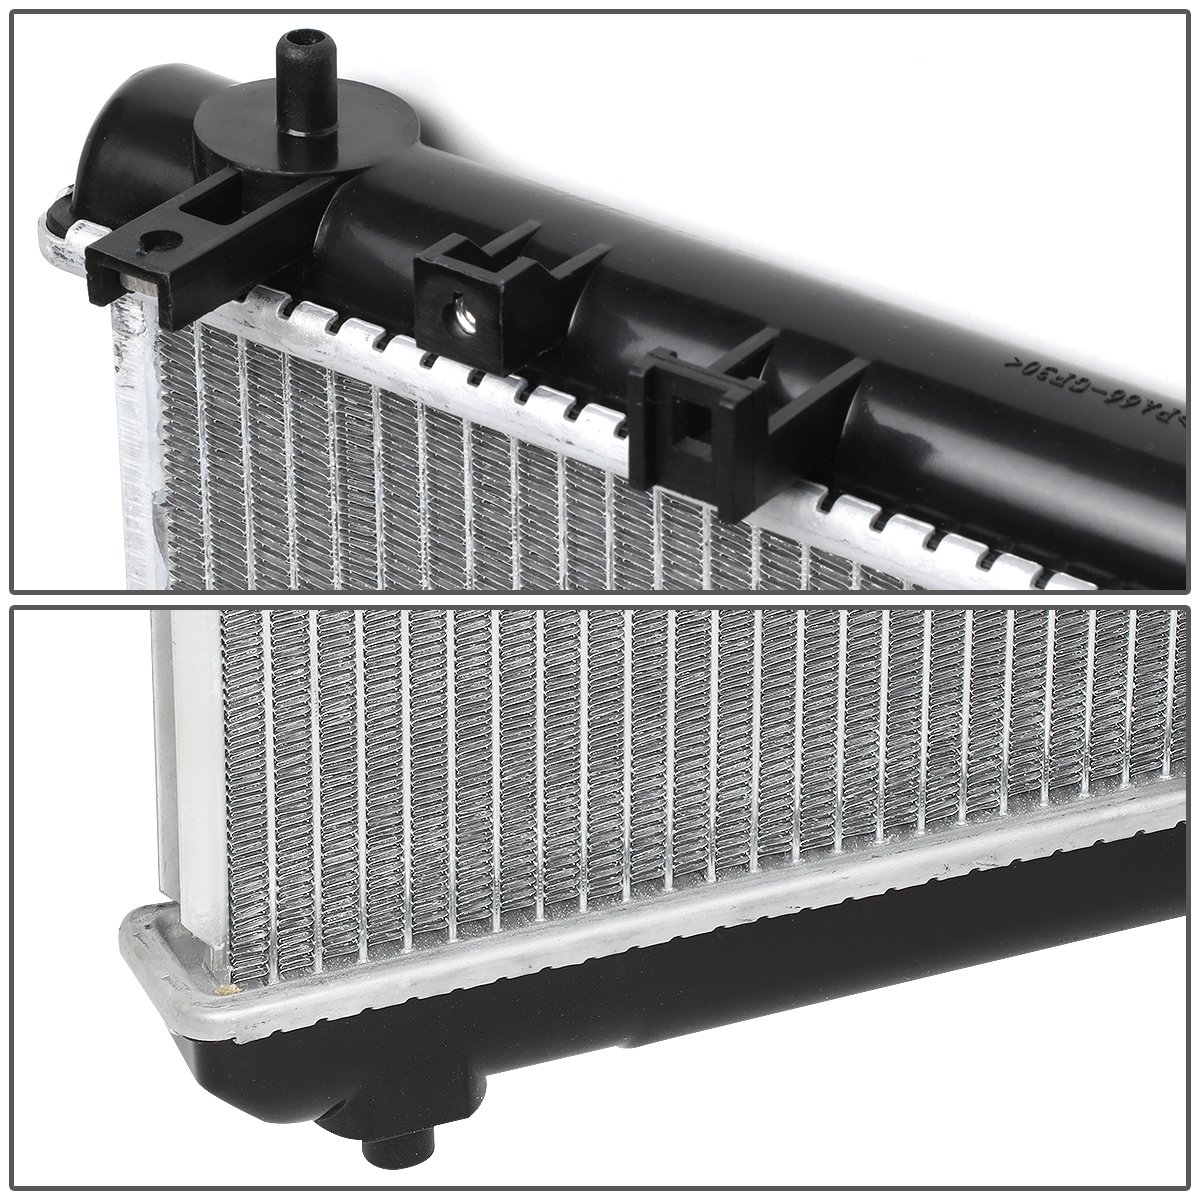 Amazon.com: DNA Motoring OEM-RA-2324 OE Style Direct Fit Radiator (00-04 Toyota Avalon): Automotive